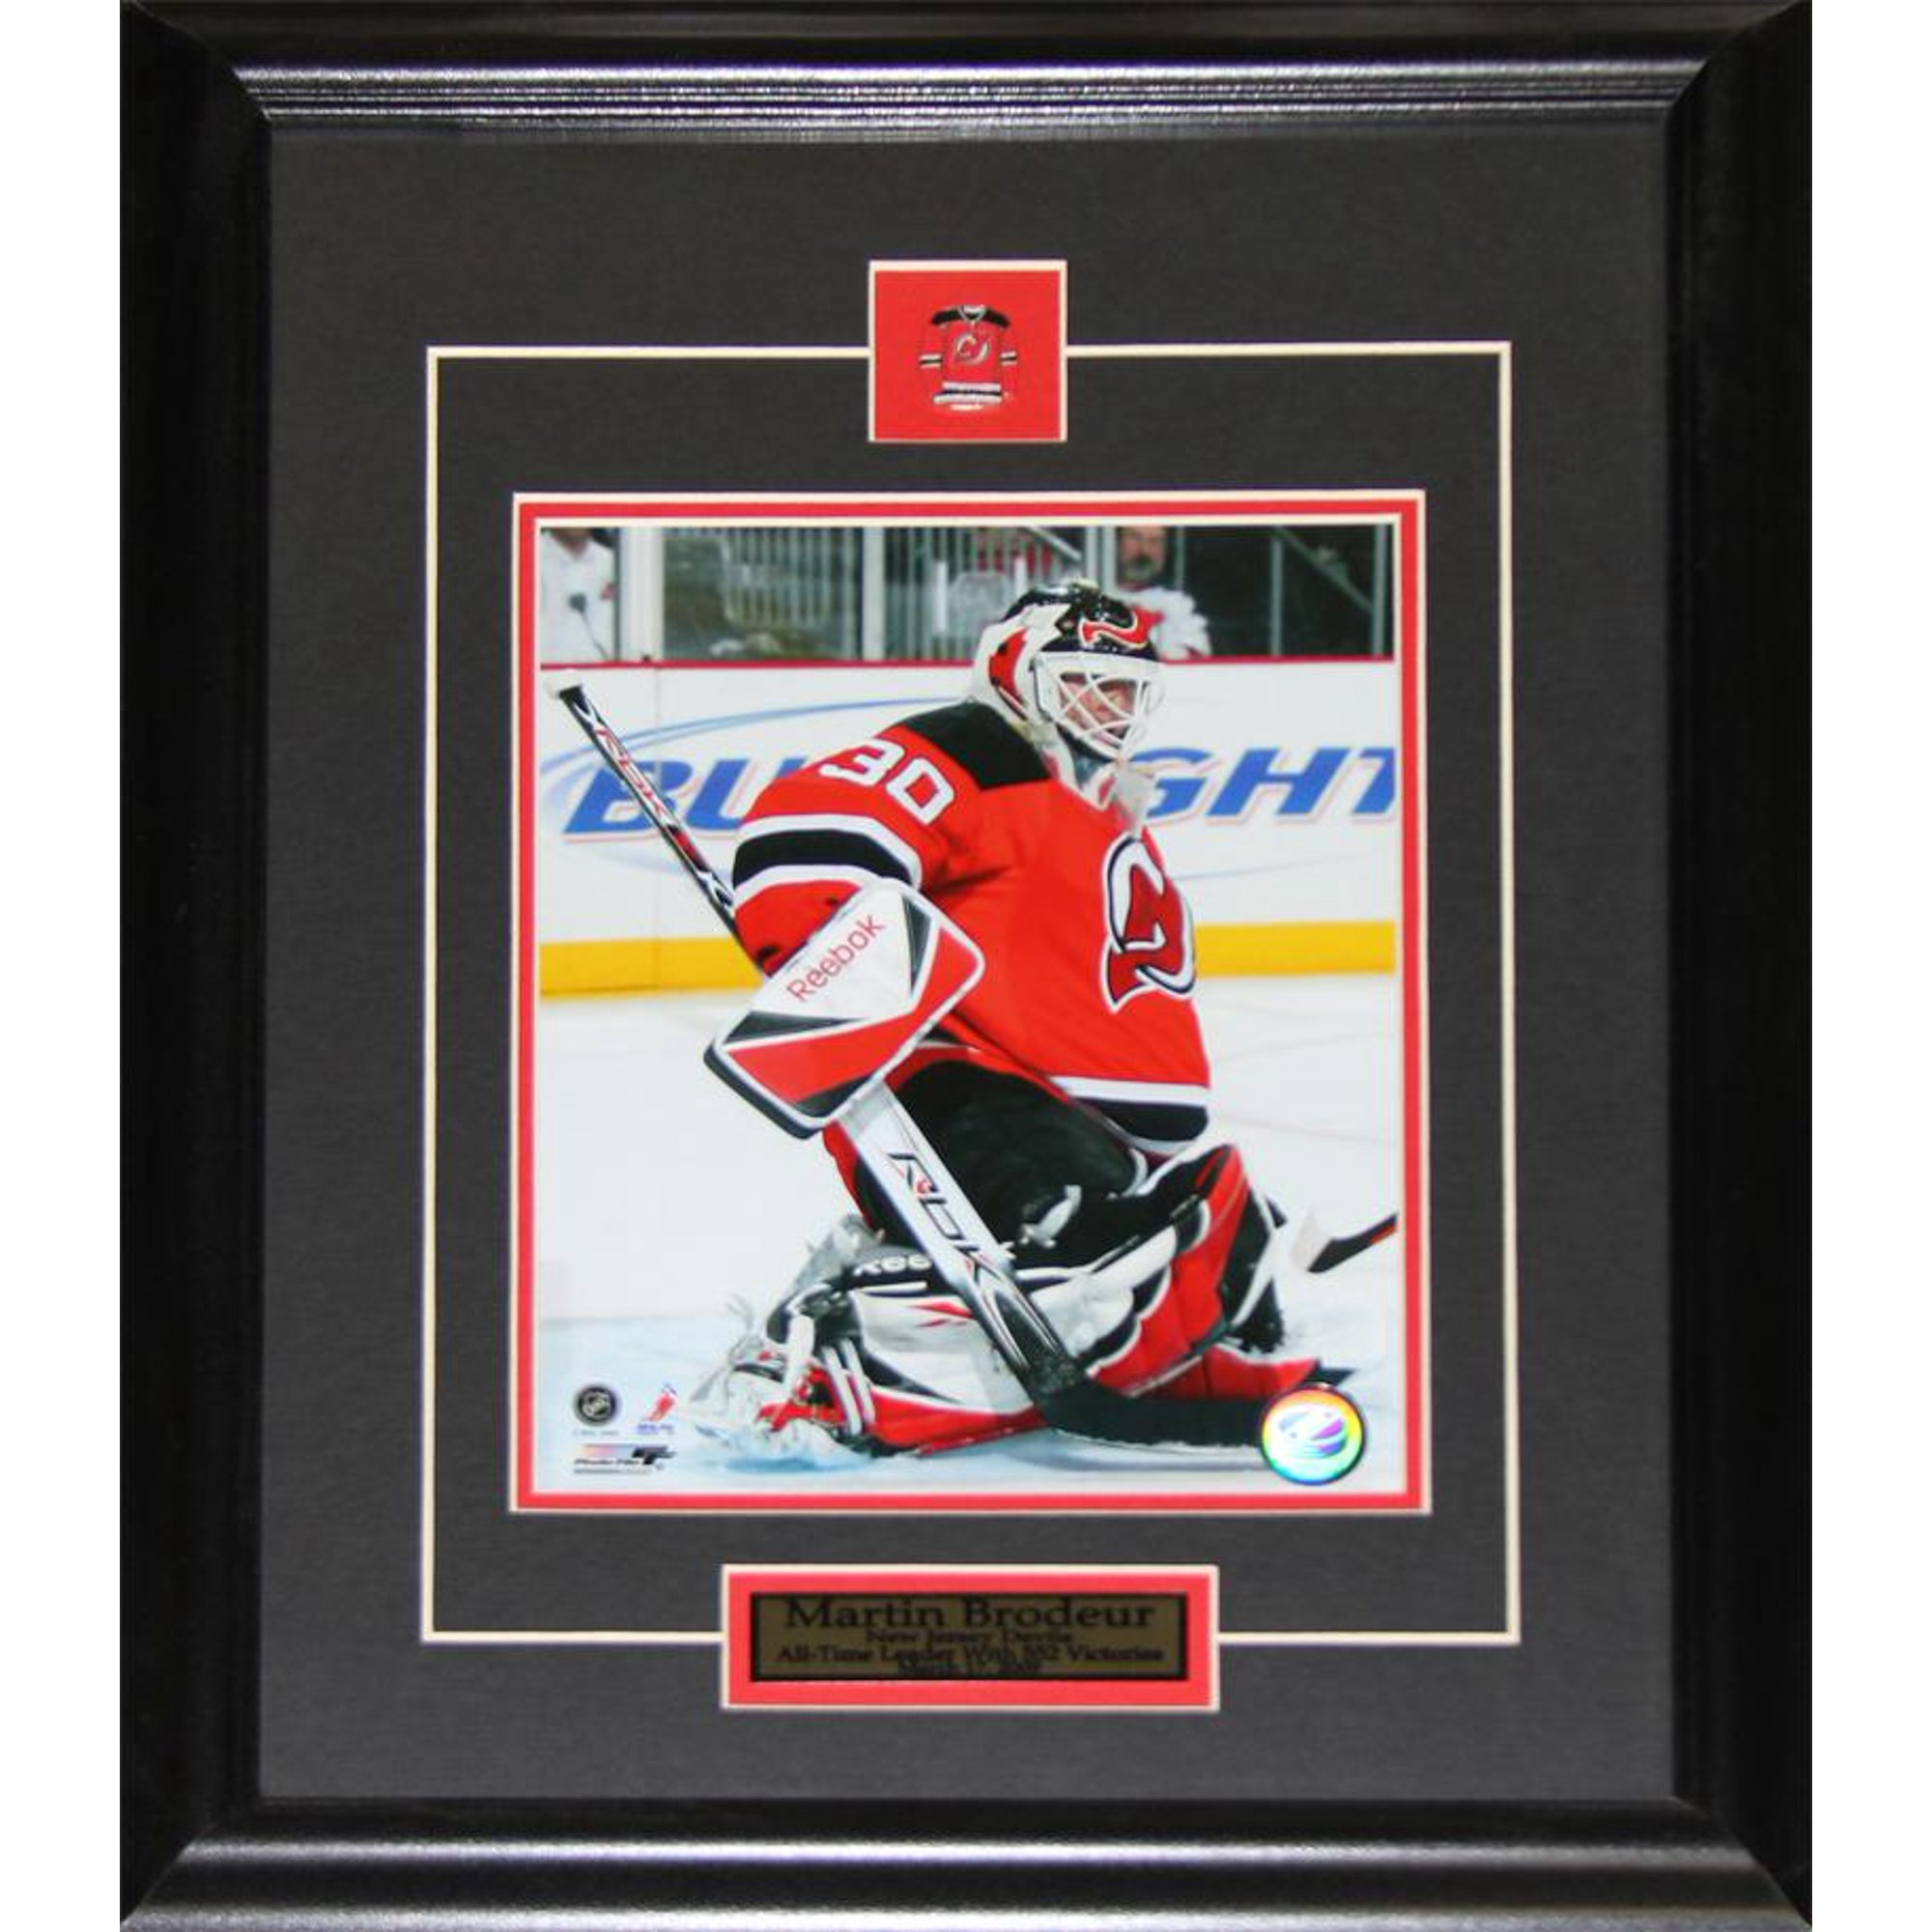 wholesale dealer 30ca5 f2502 Martin Brodeur New Jersey Devils 8x10 NHL Hockey Memorabilia ...